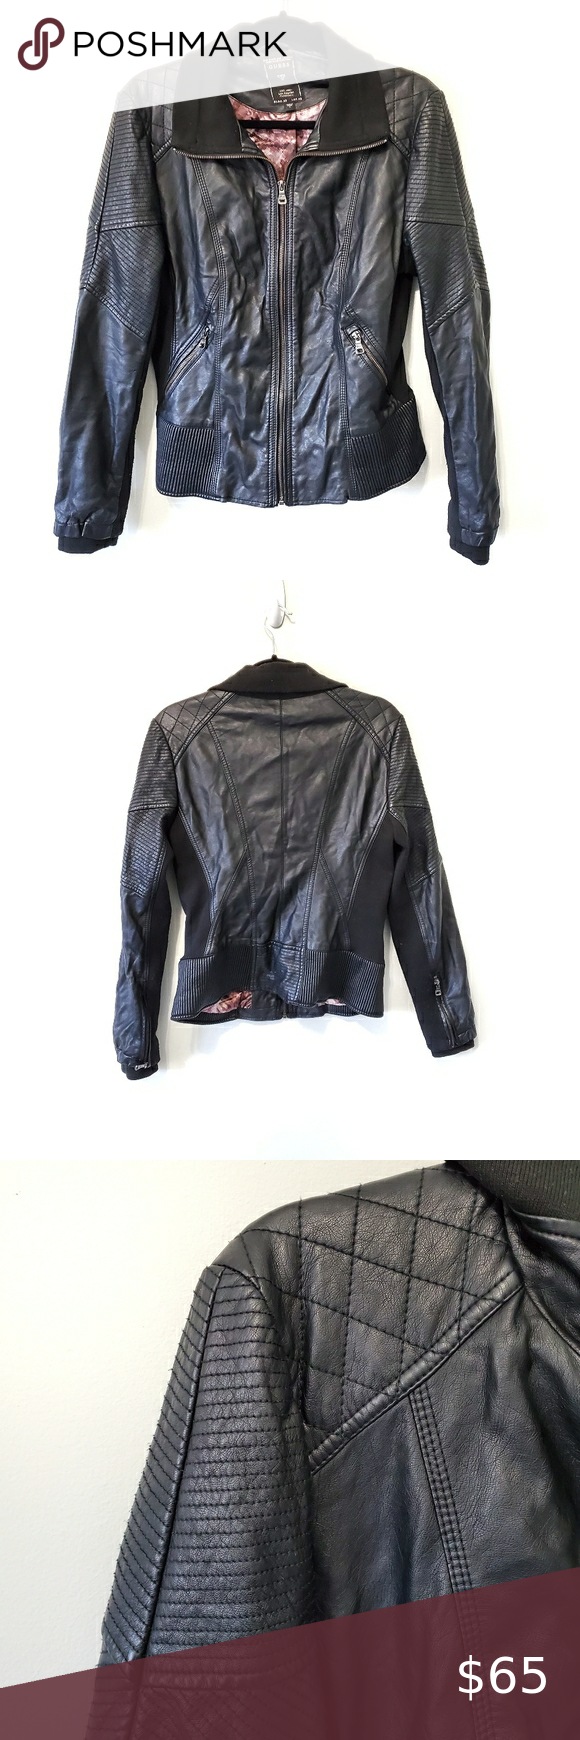 Guess Faux Leather Jacket Black Faux Leather Jacket Leather Jacket Faux Leather Jackets